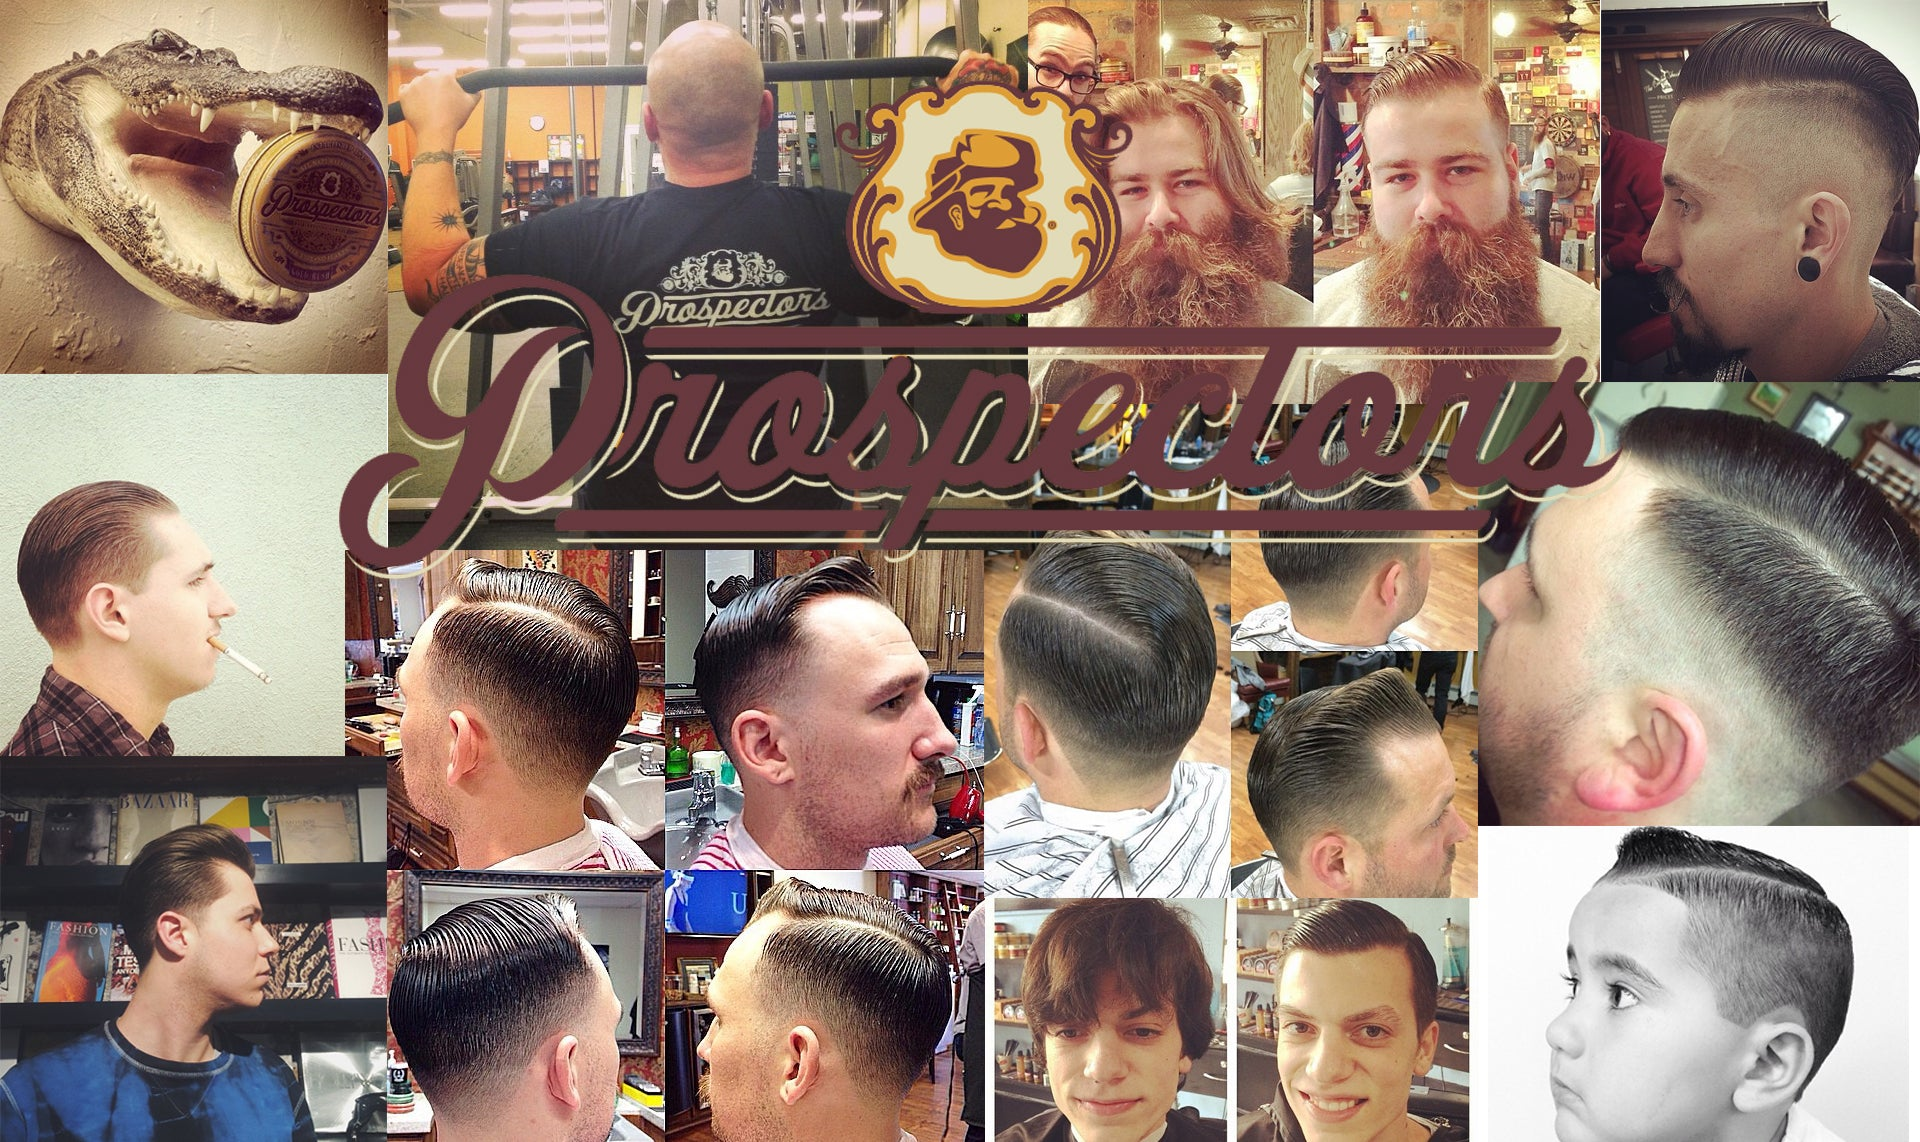 Collage Prospectors pomade supporters barbers hairstyles barbershop